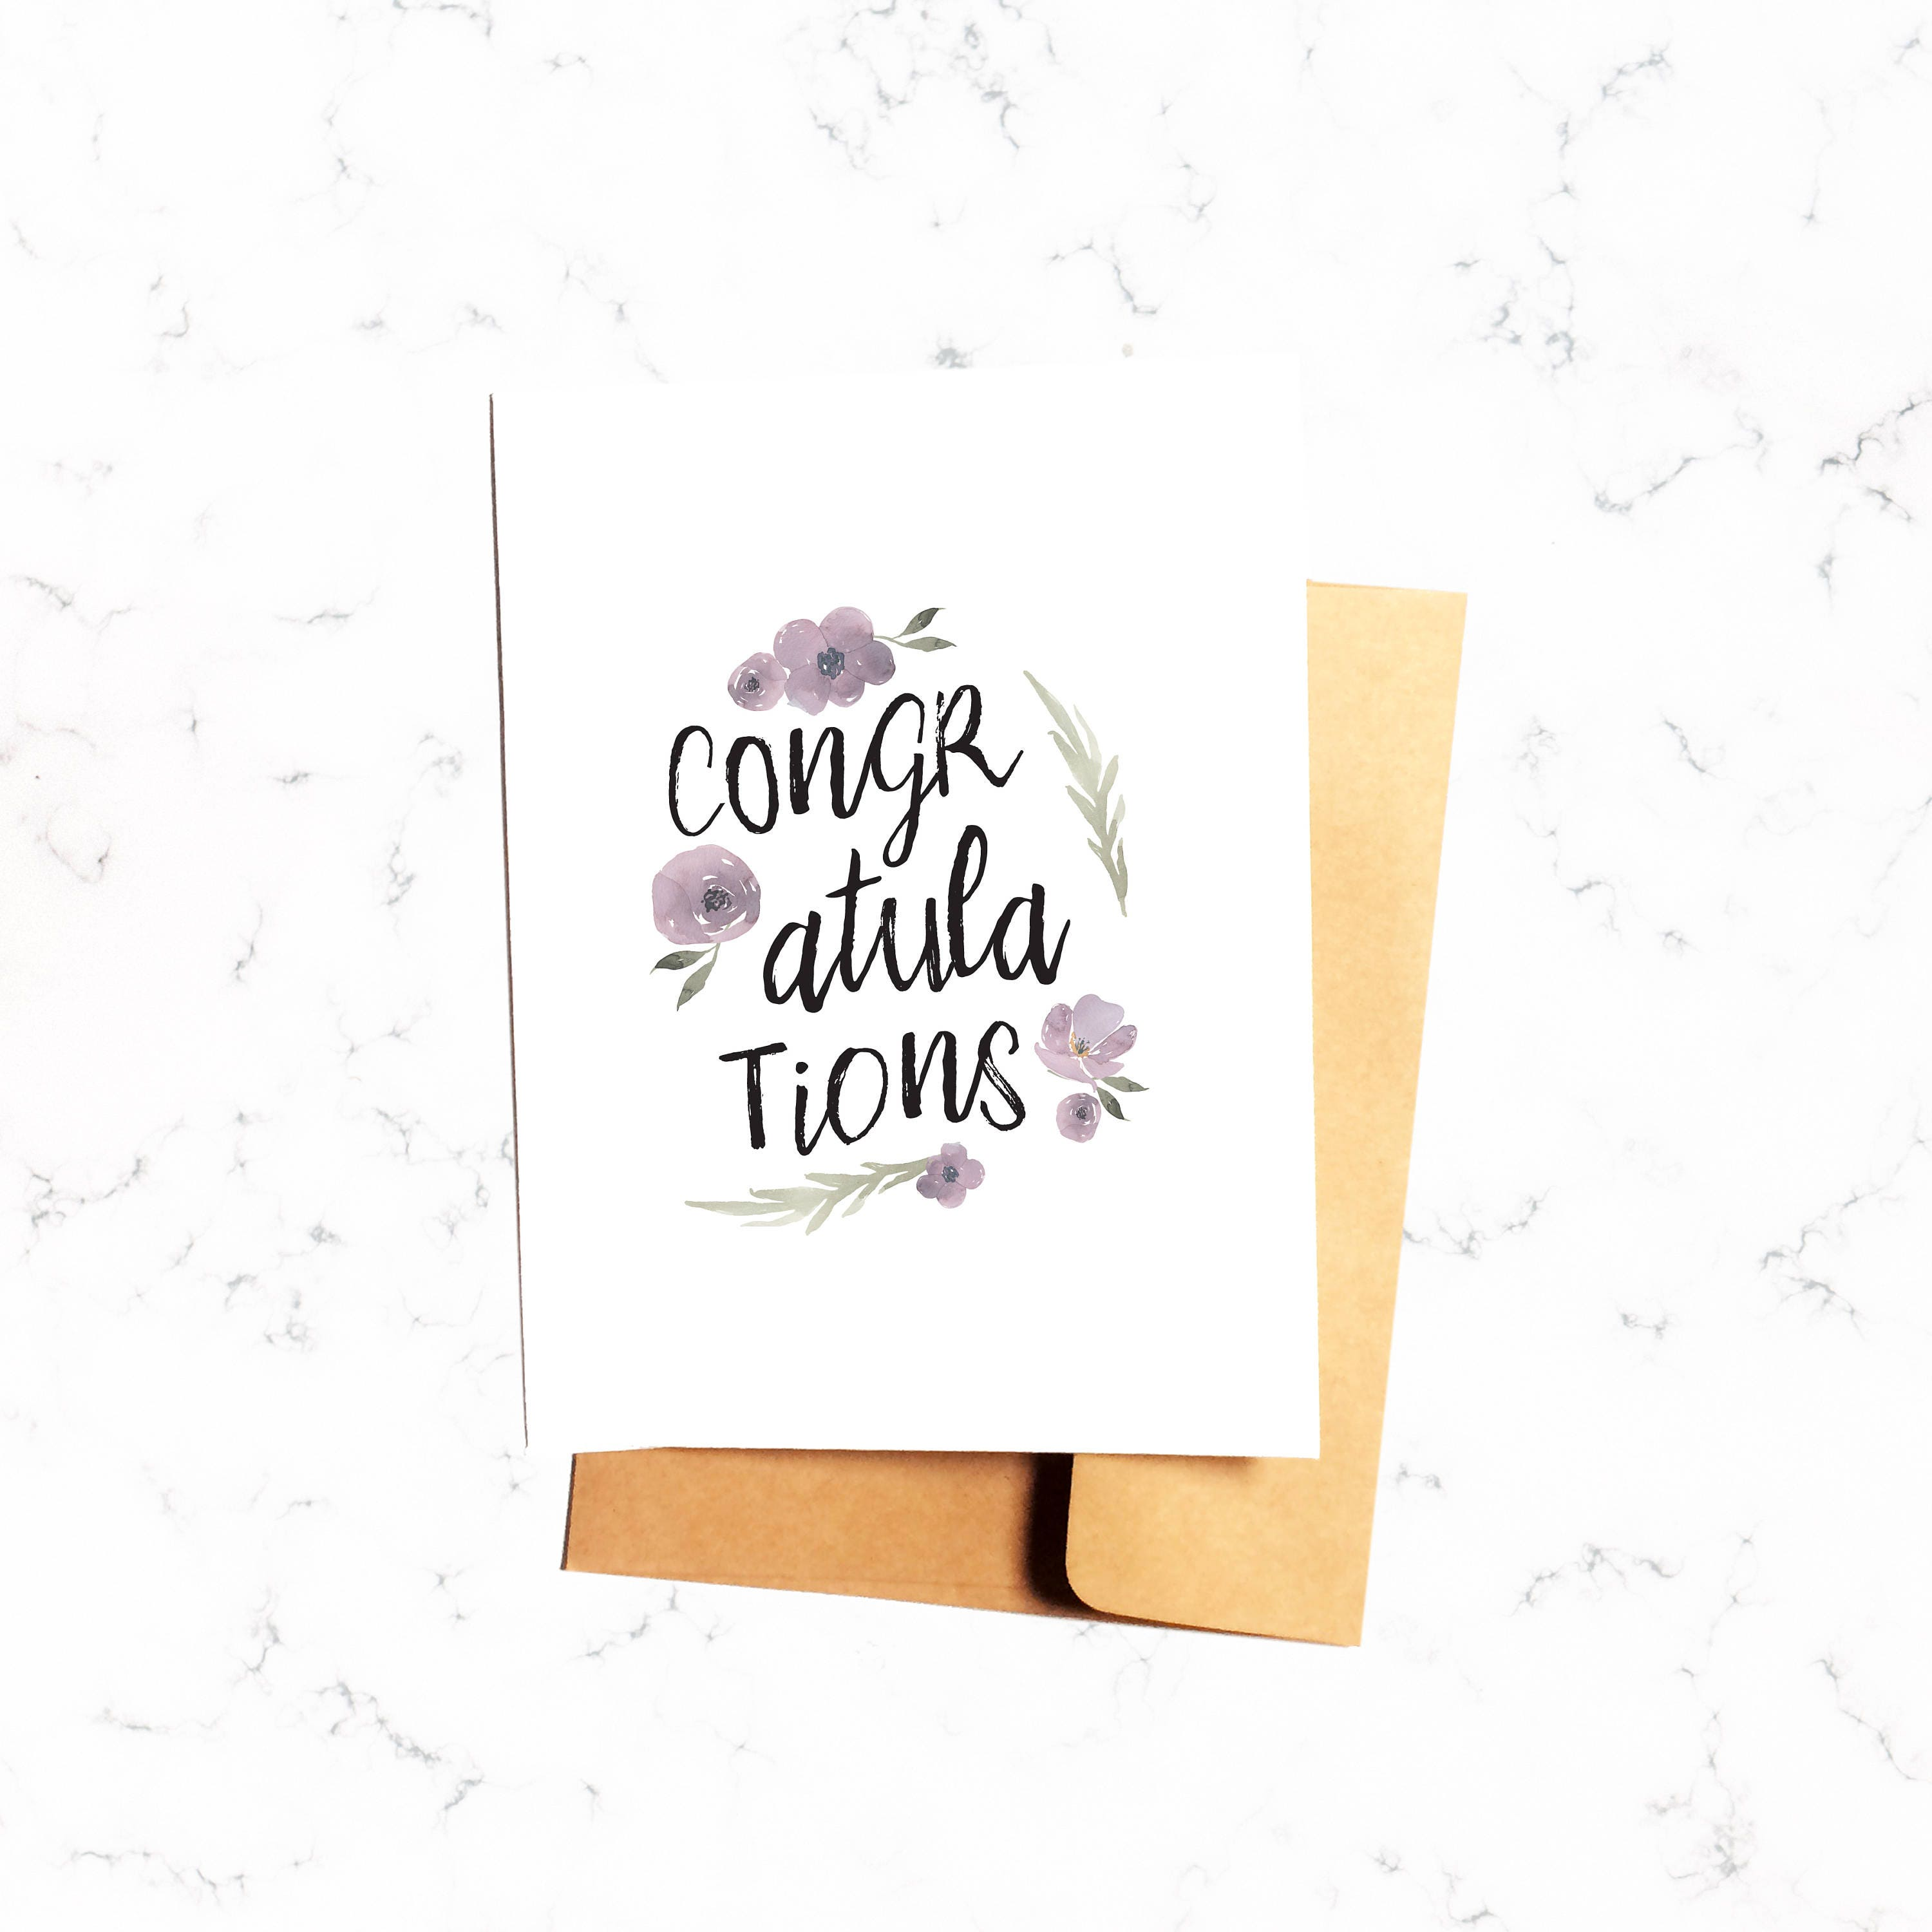 Congratulations card congrats greeting for her baby shower congratulations card congrats greeting for her baby shower wedding marriage new homeowners job graduation engagement kristyandbryce Images